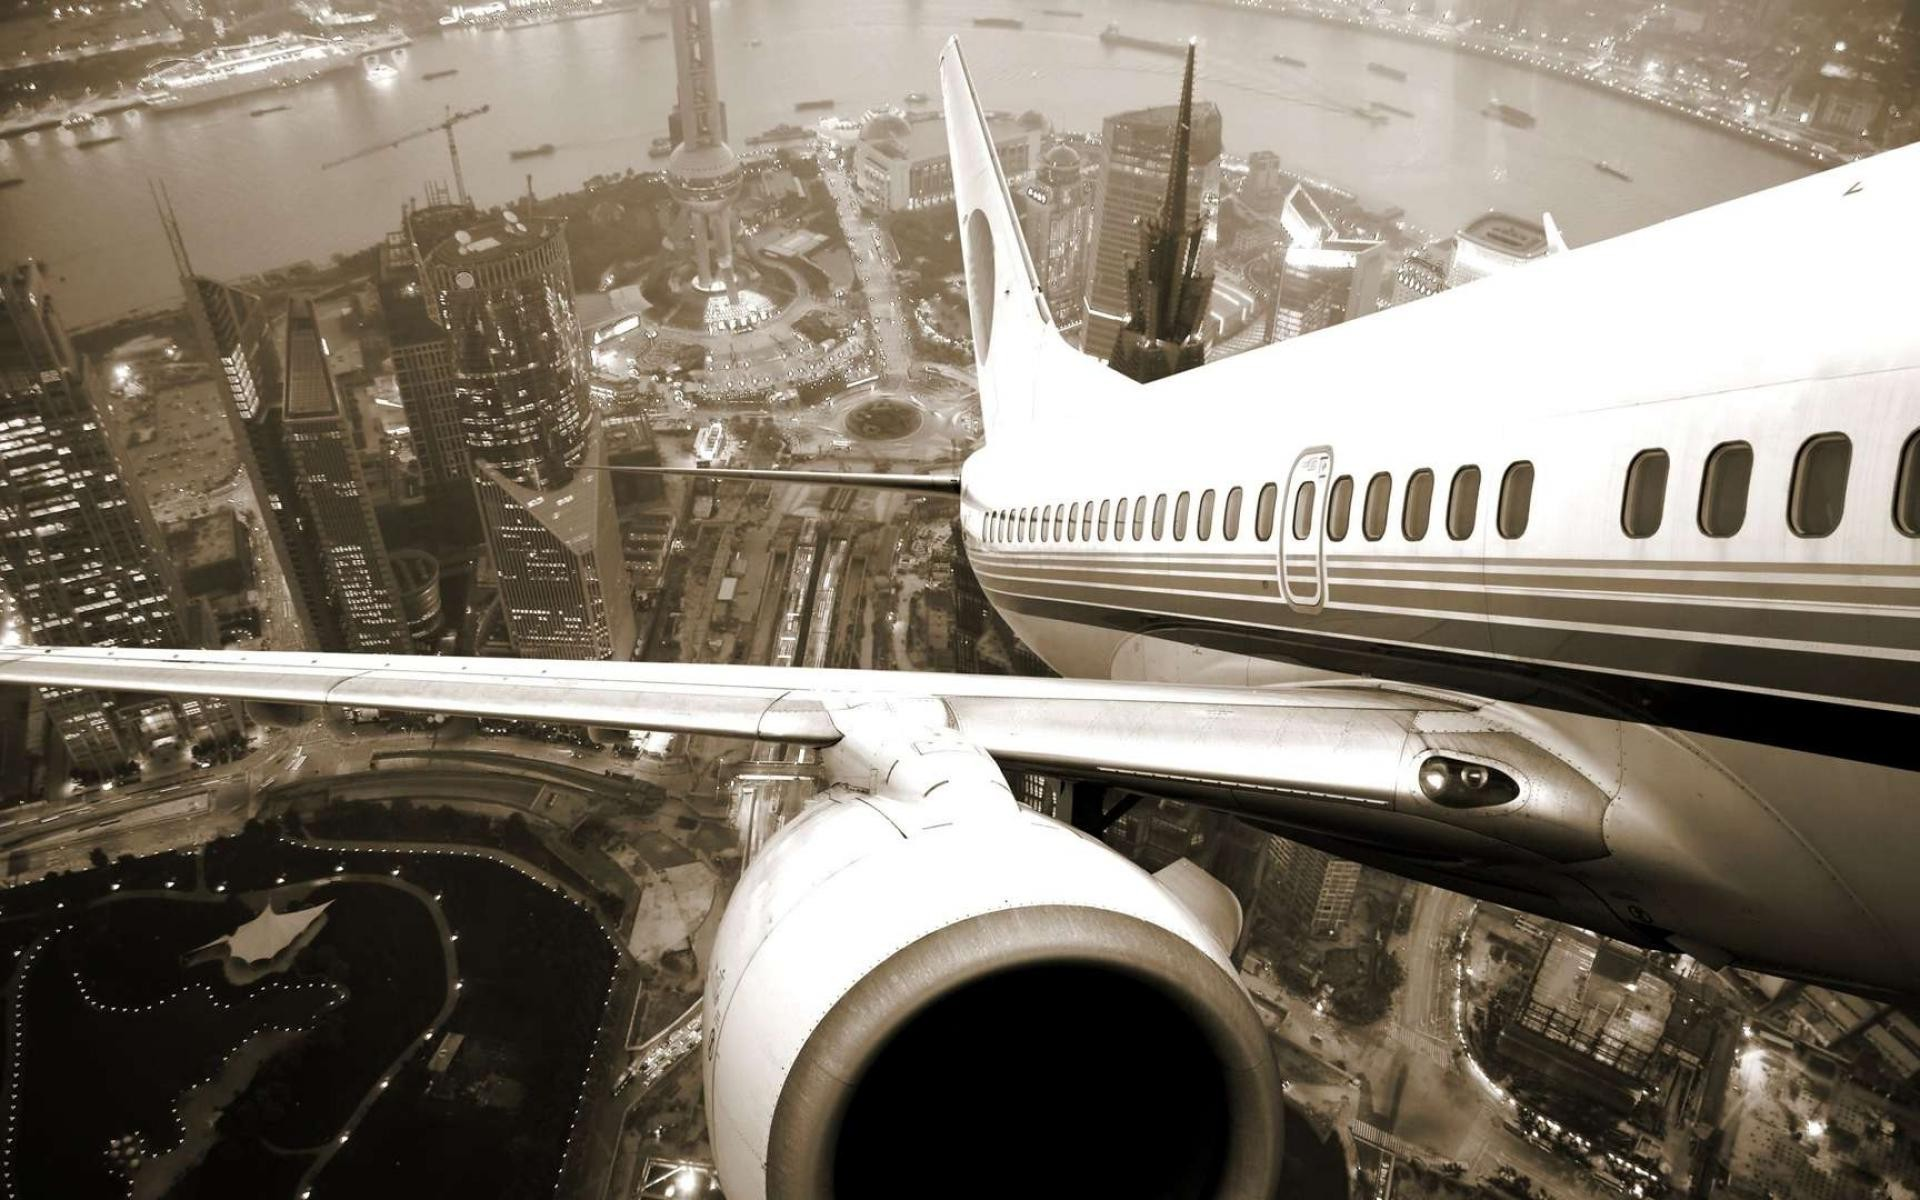 Private jet leaving the city